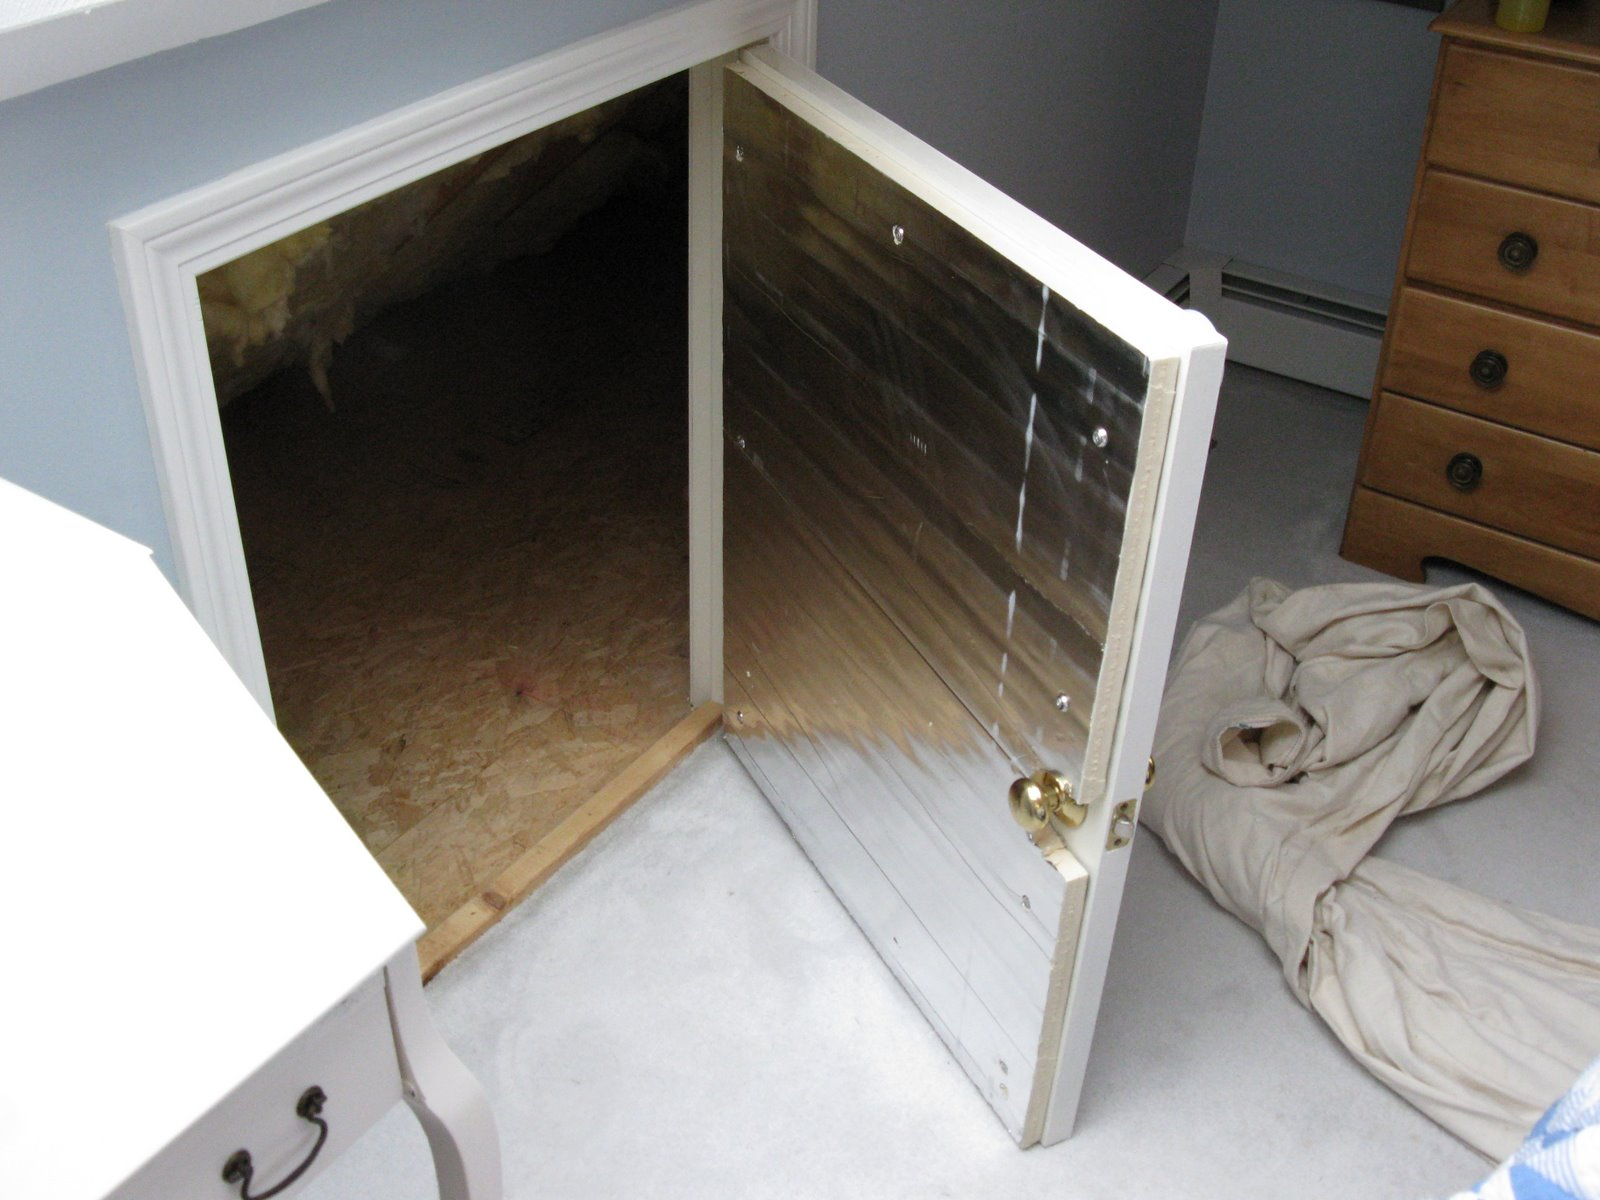 How to insulate a crawlspace door a concord carpenter for How to build a crawl space foundation for a house